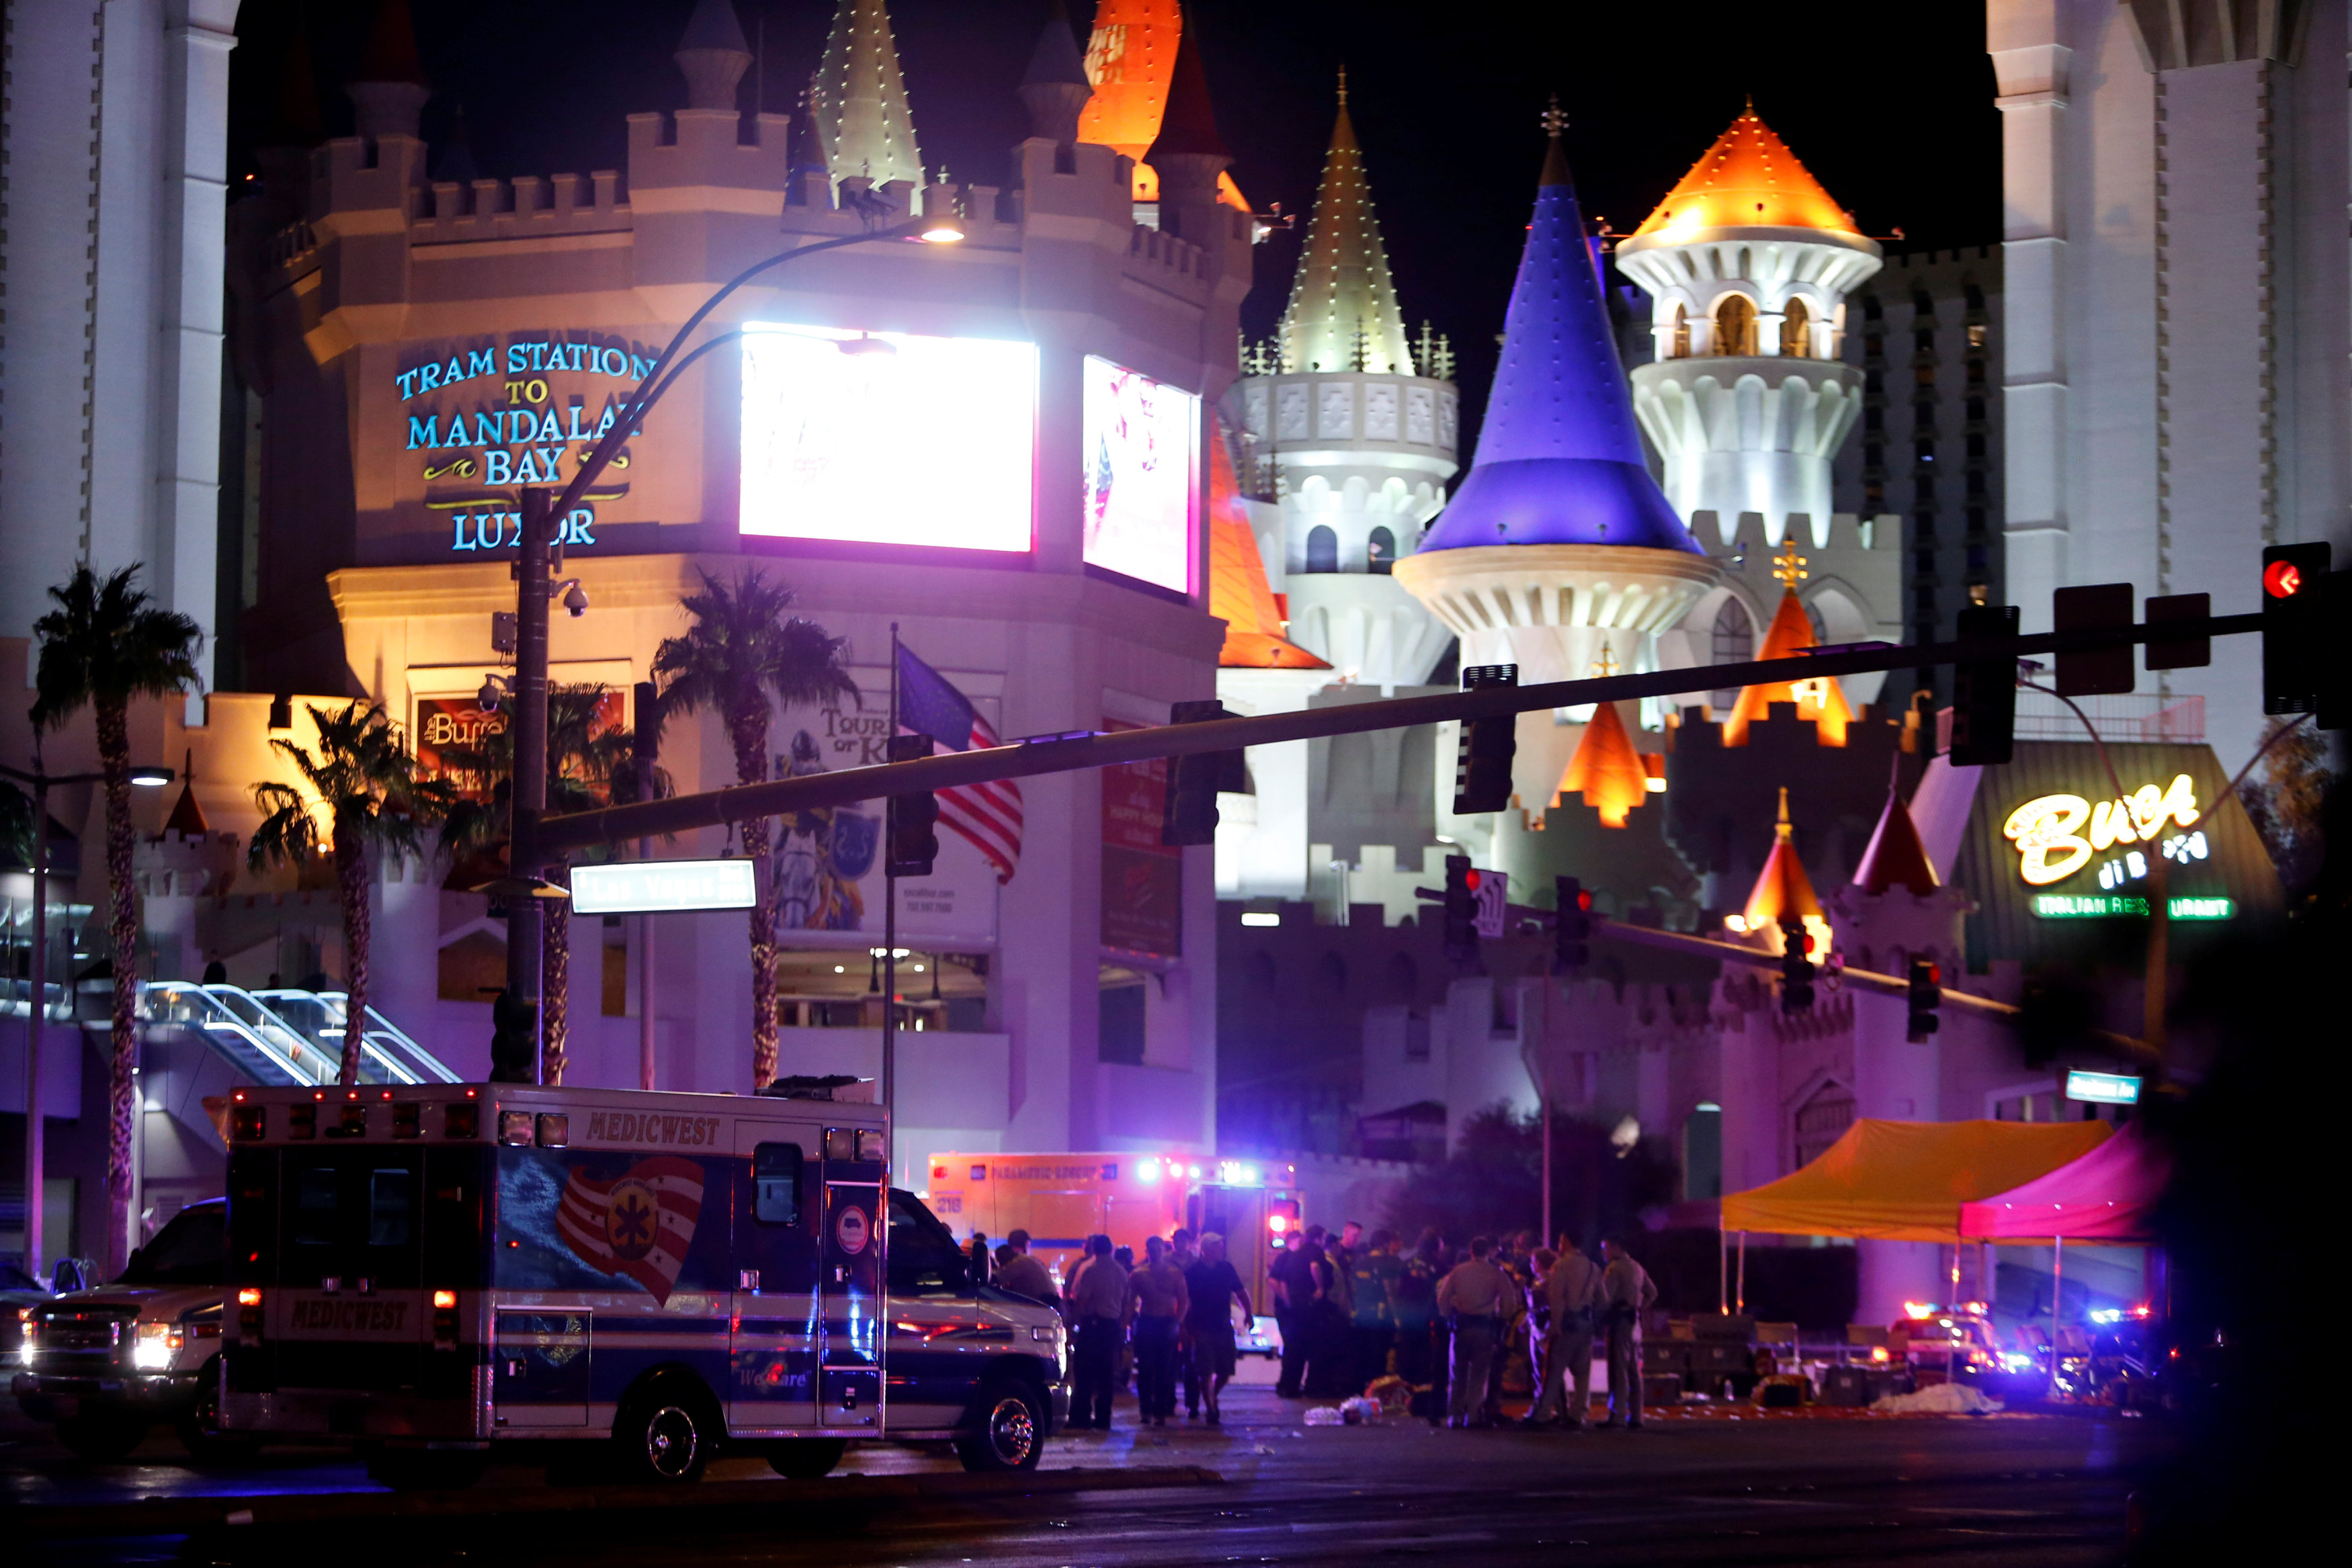 Las Vegas Metro Police and medical workers stage in the intersection of Tropicana Avenue and Las Vegas Boulevard South after a mass shooting at a music festival on the Las Vegas Strip in Las Vegas, Nevada, U.S. October 1, 2017.